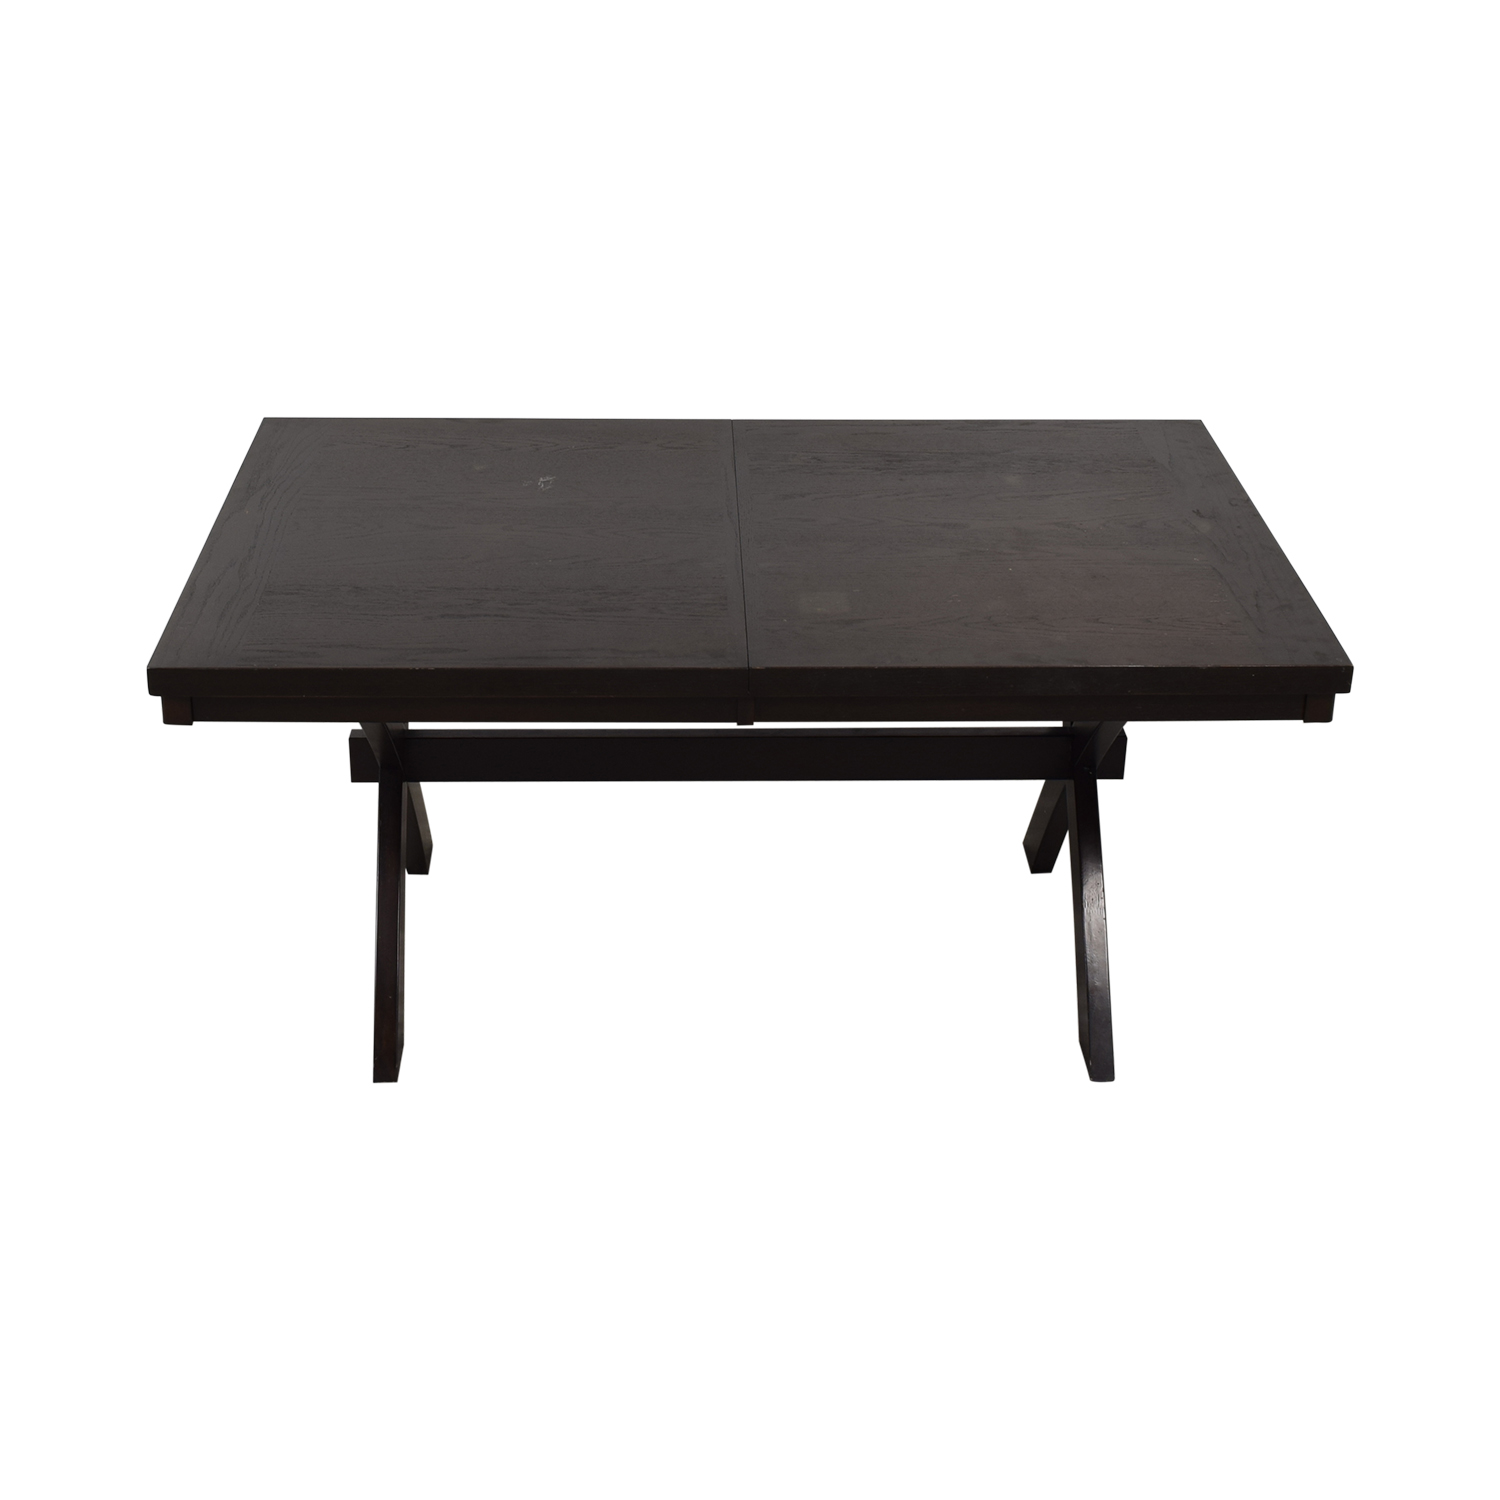 buy Raymour & Flanigan Expandable Dining Table Raymour & Flanigan Dinner Tables